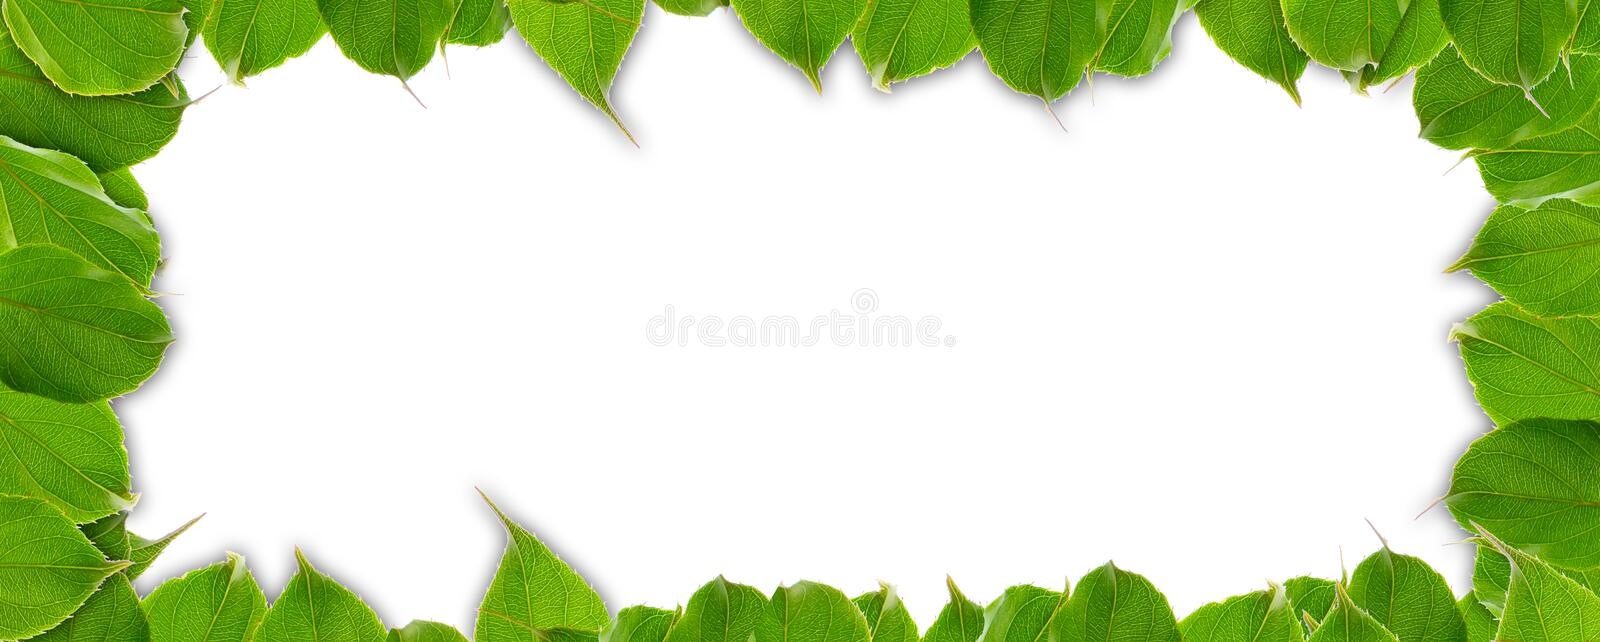 Summer Frame of Green Leaves royalty free stock photography